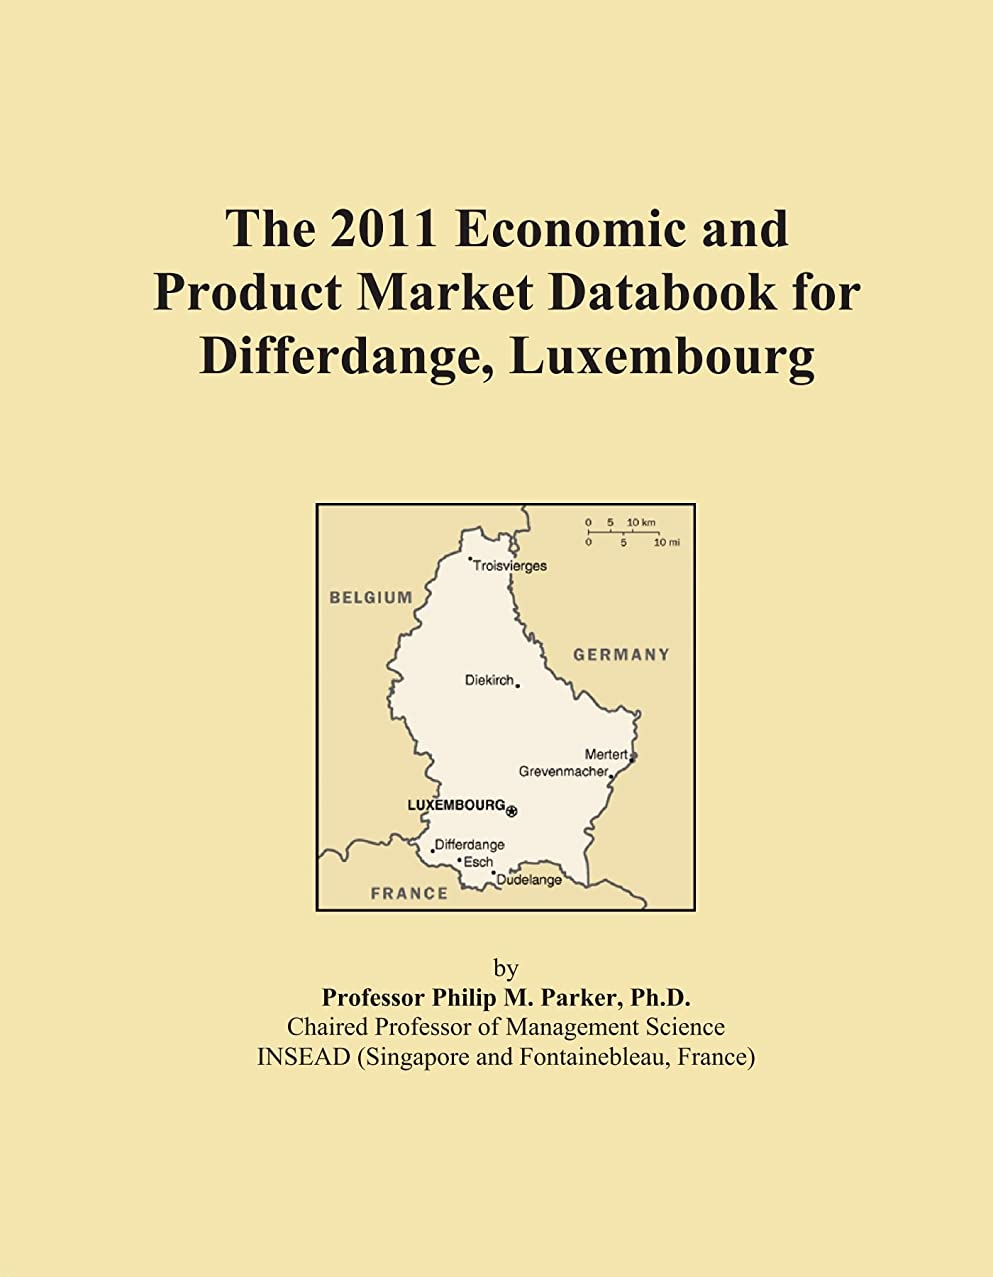 The 2011 Economic and Product Market Databook for Differdange, Luxembourg